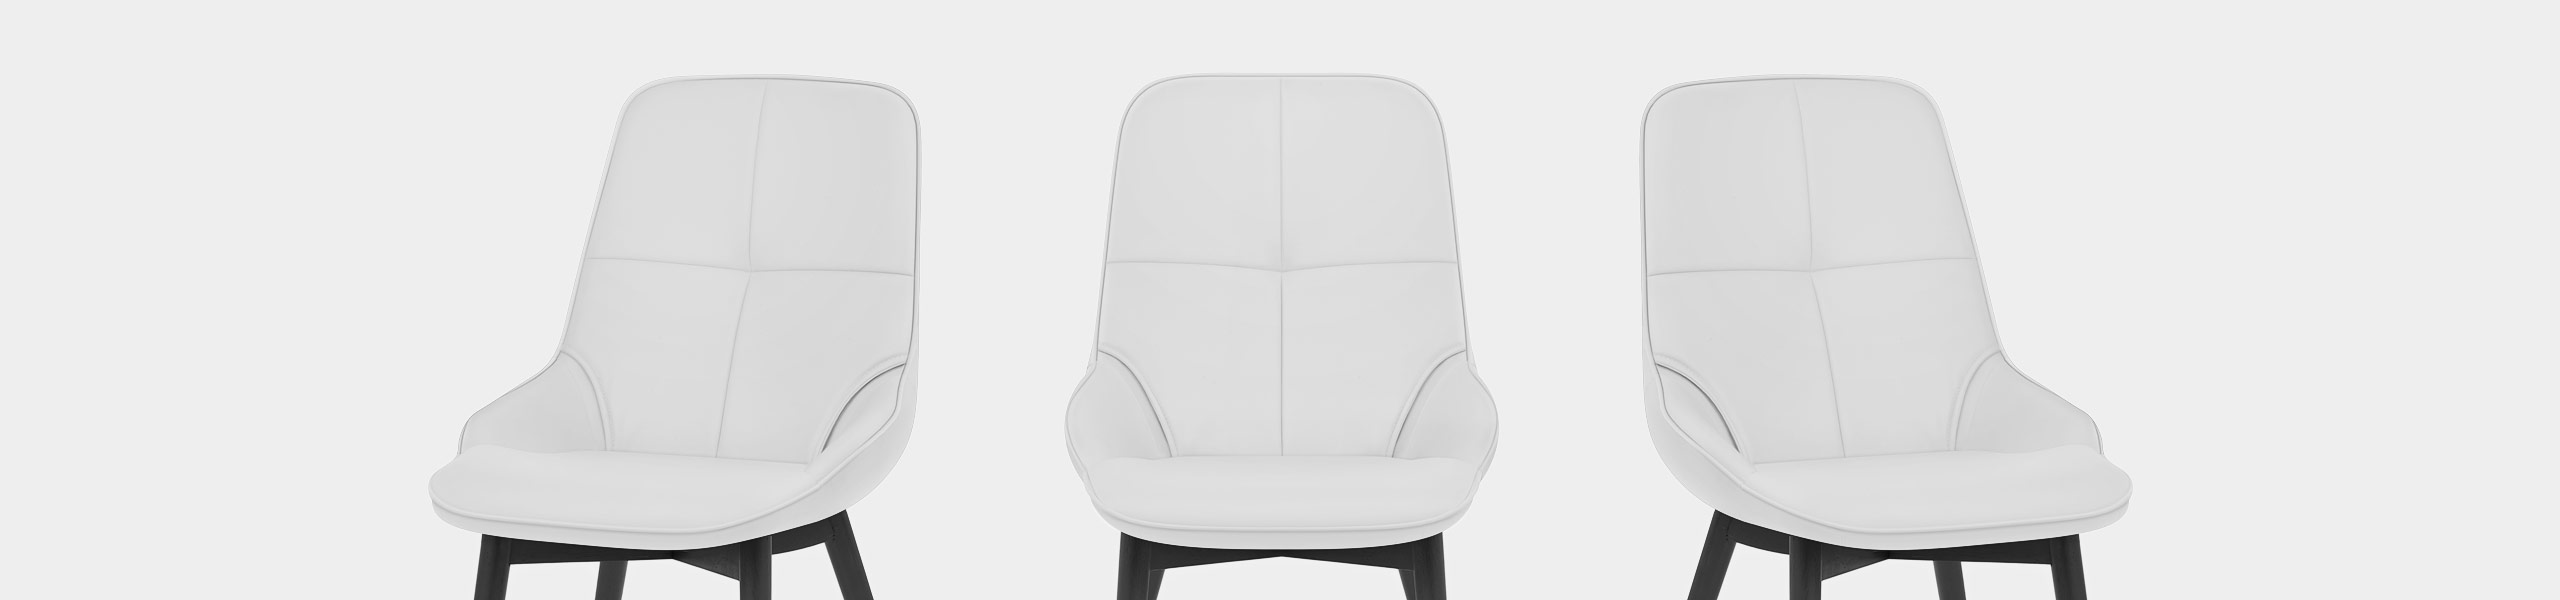 Dynasty Dining Chair White Leather Video Banner